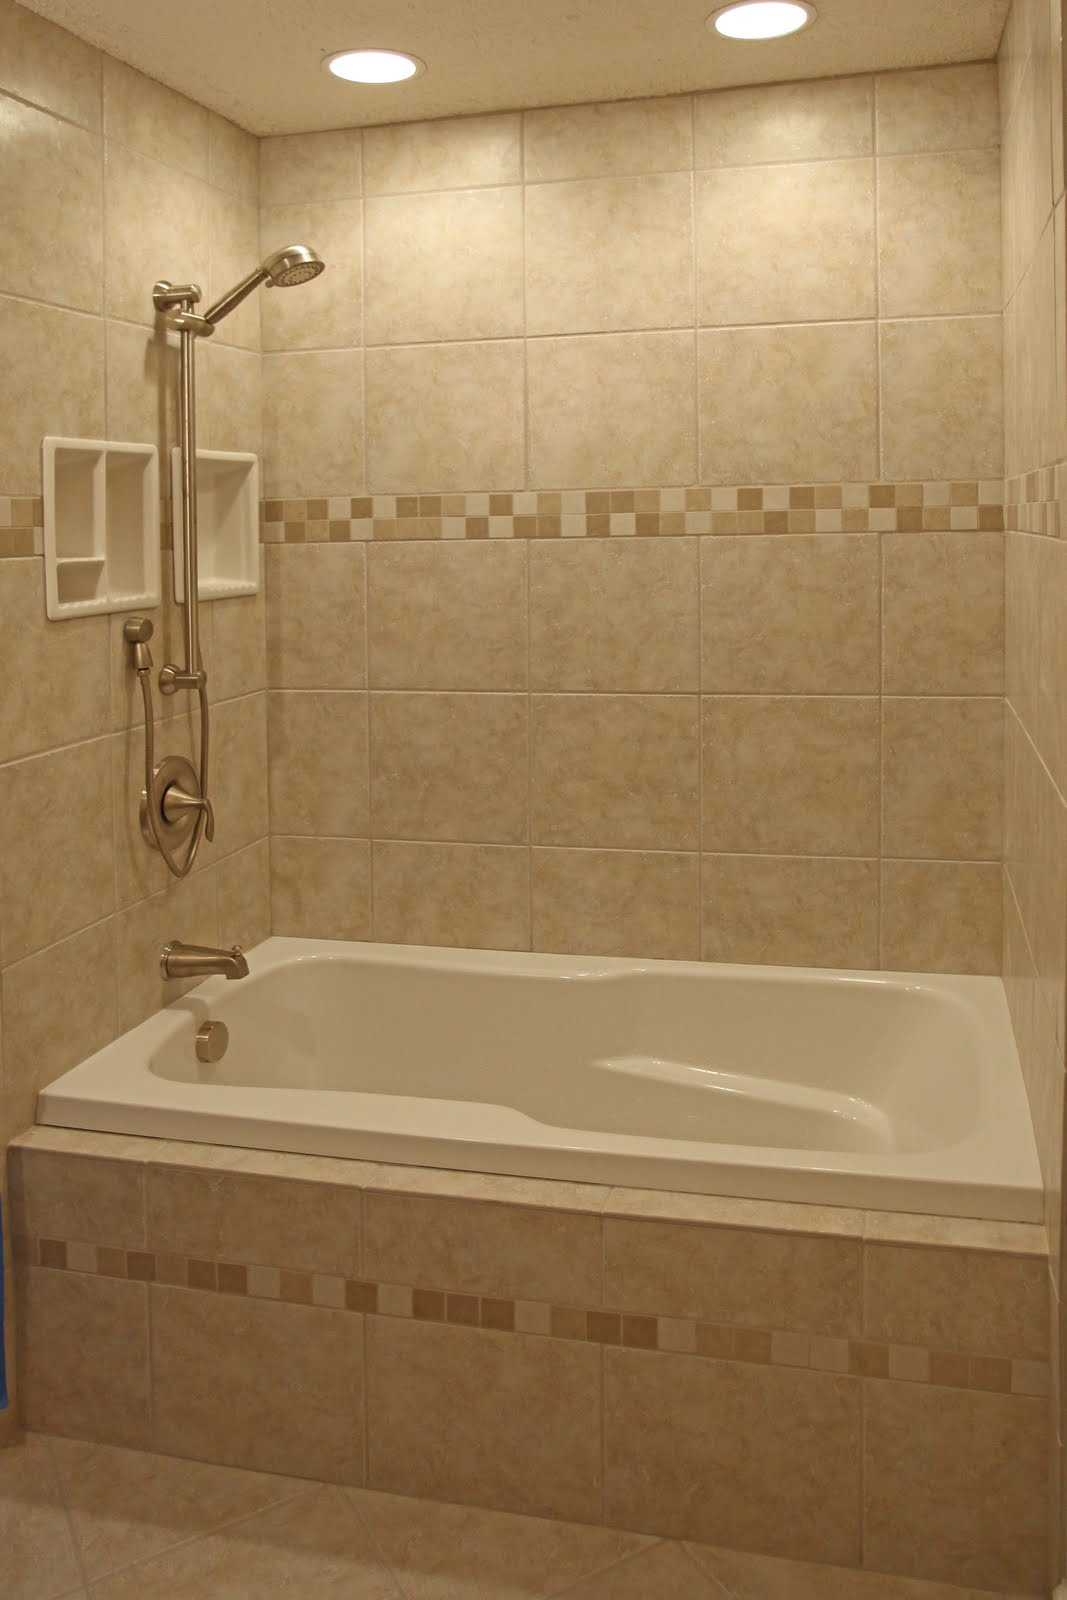 Bathroom remodeling design ideas tile shower niches for Bathroom porcelain tile designs